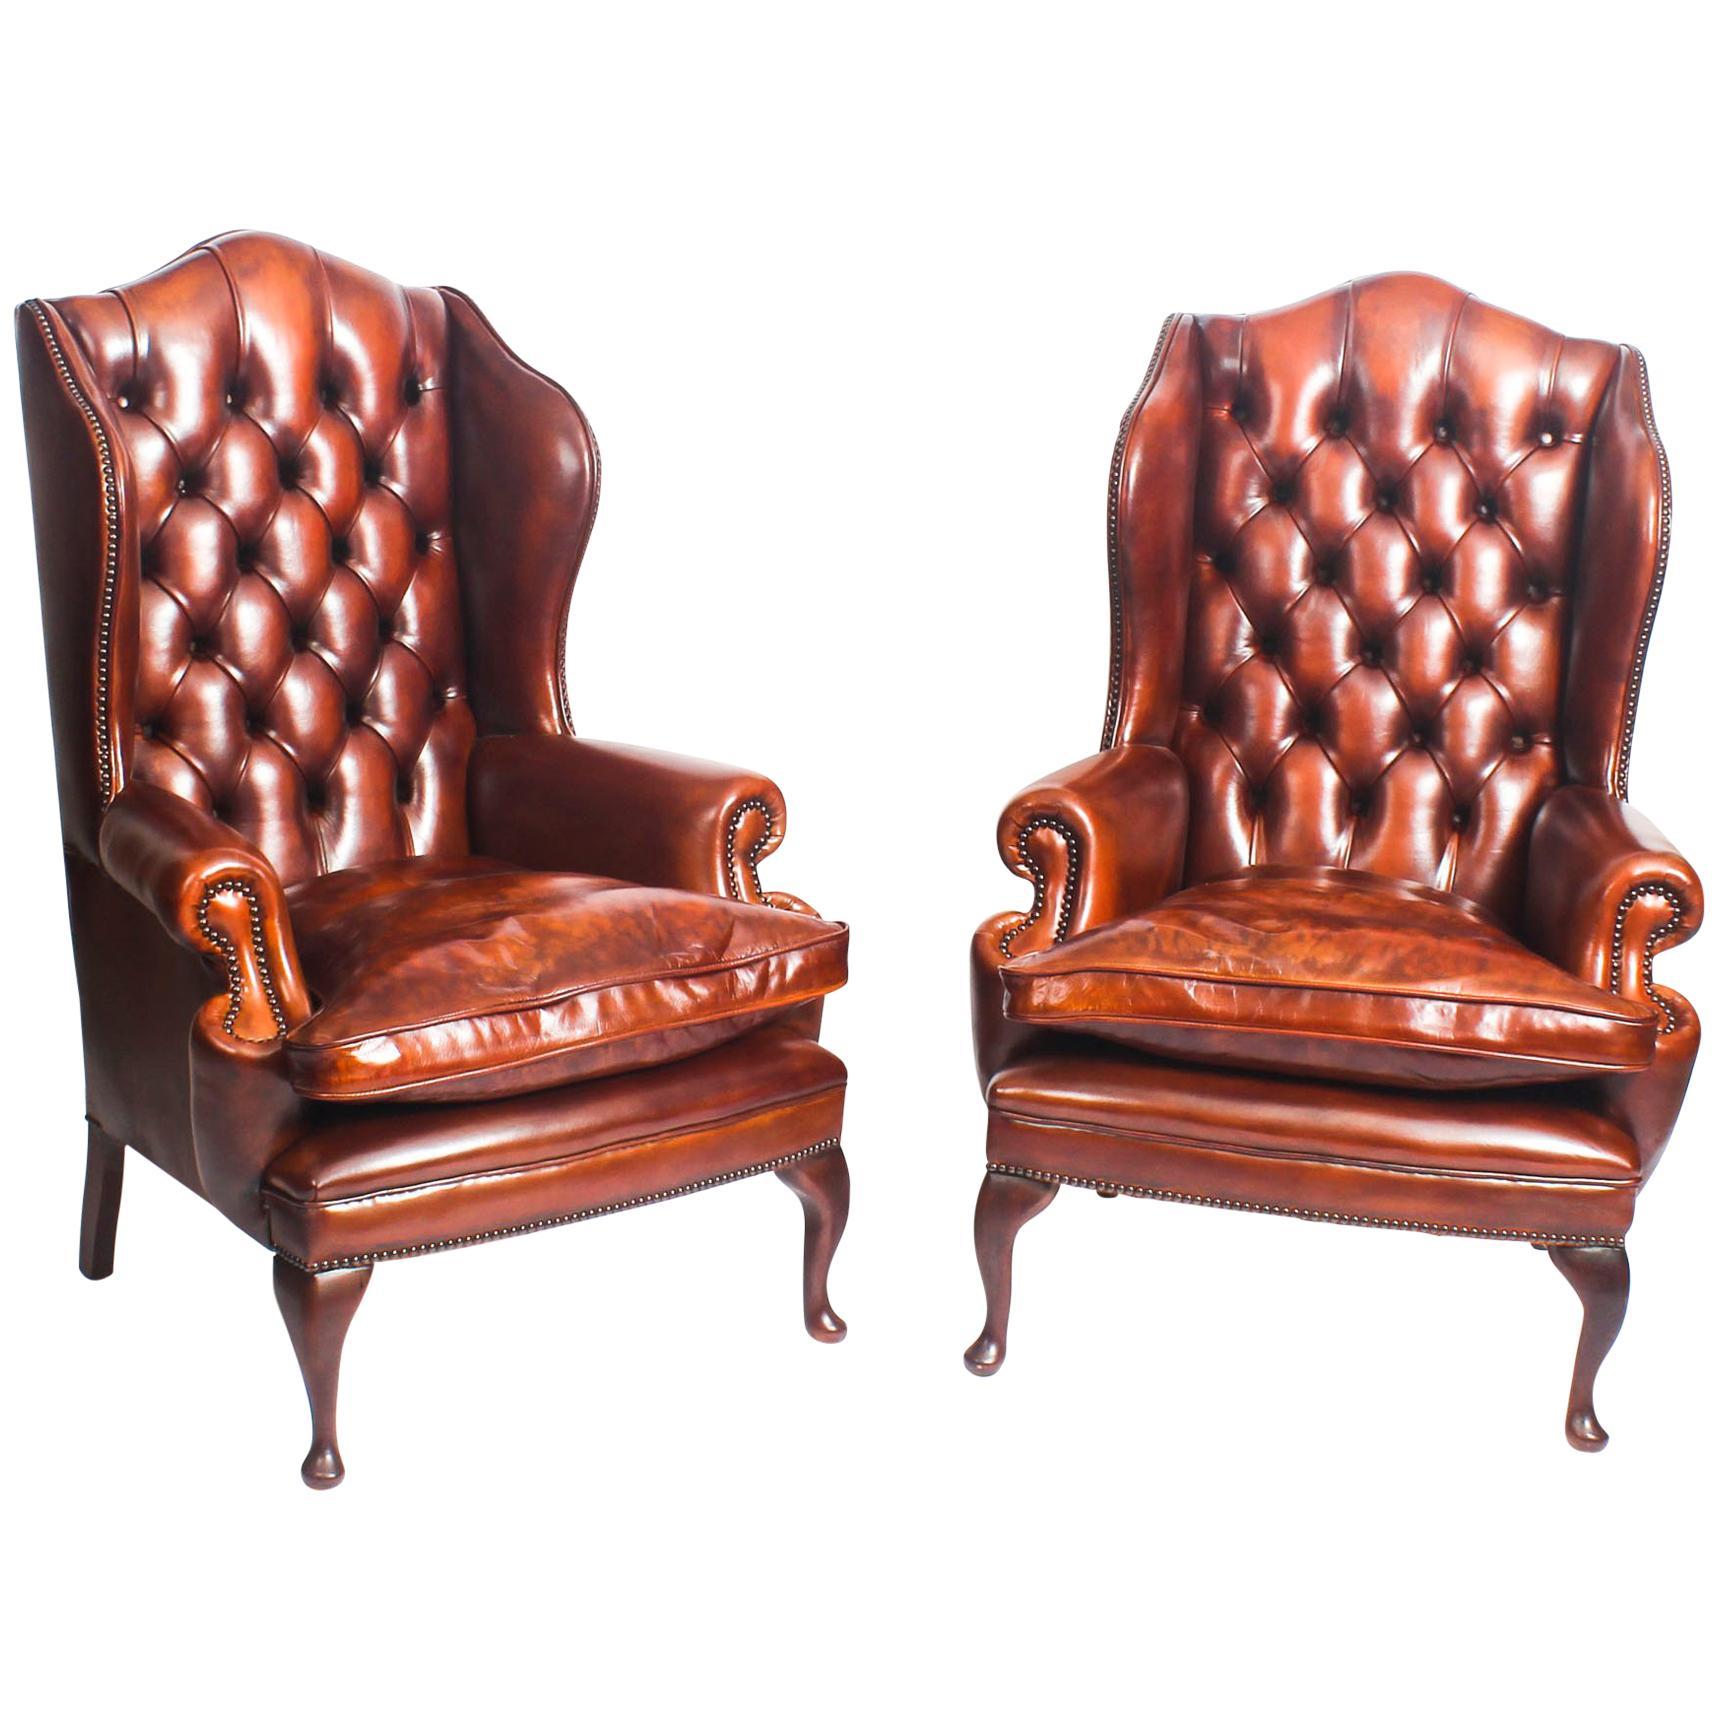 queen anne wingback chair leather classroom organizer covers bespoke pair of armchairs burnt amber for sale